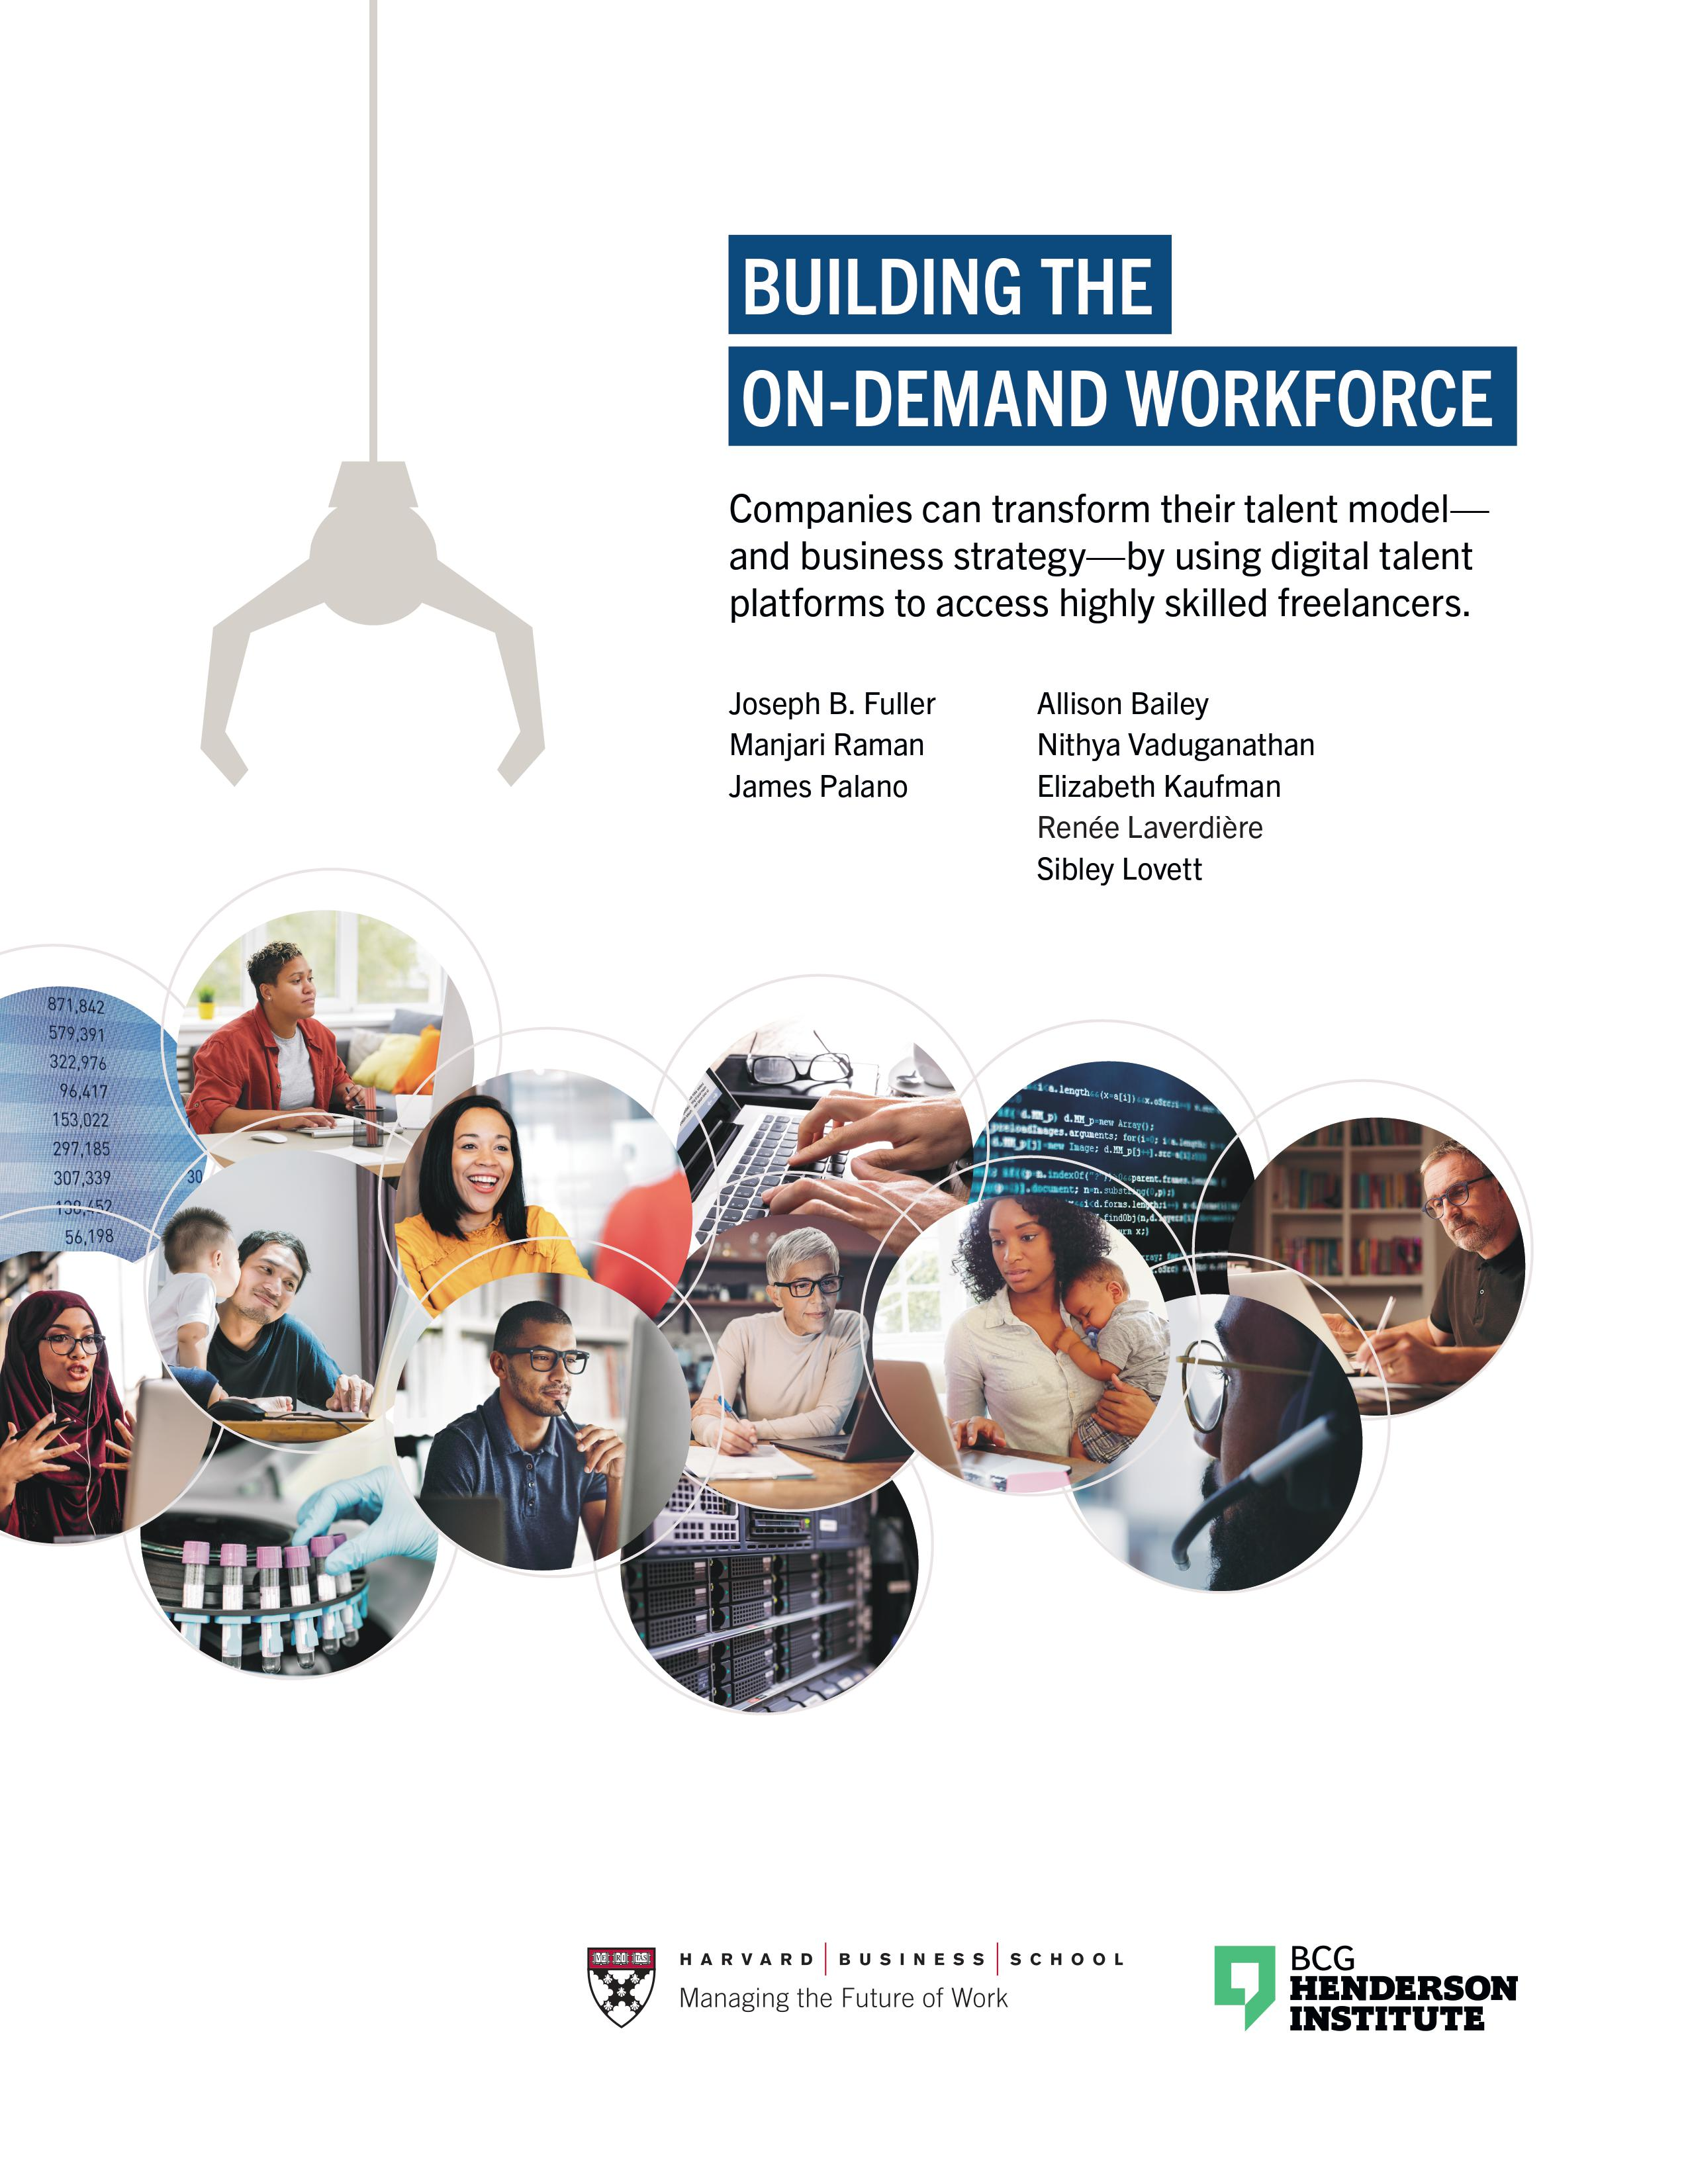 Building the On-demand Workforce